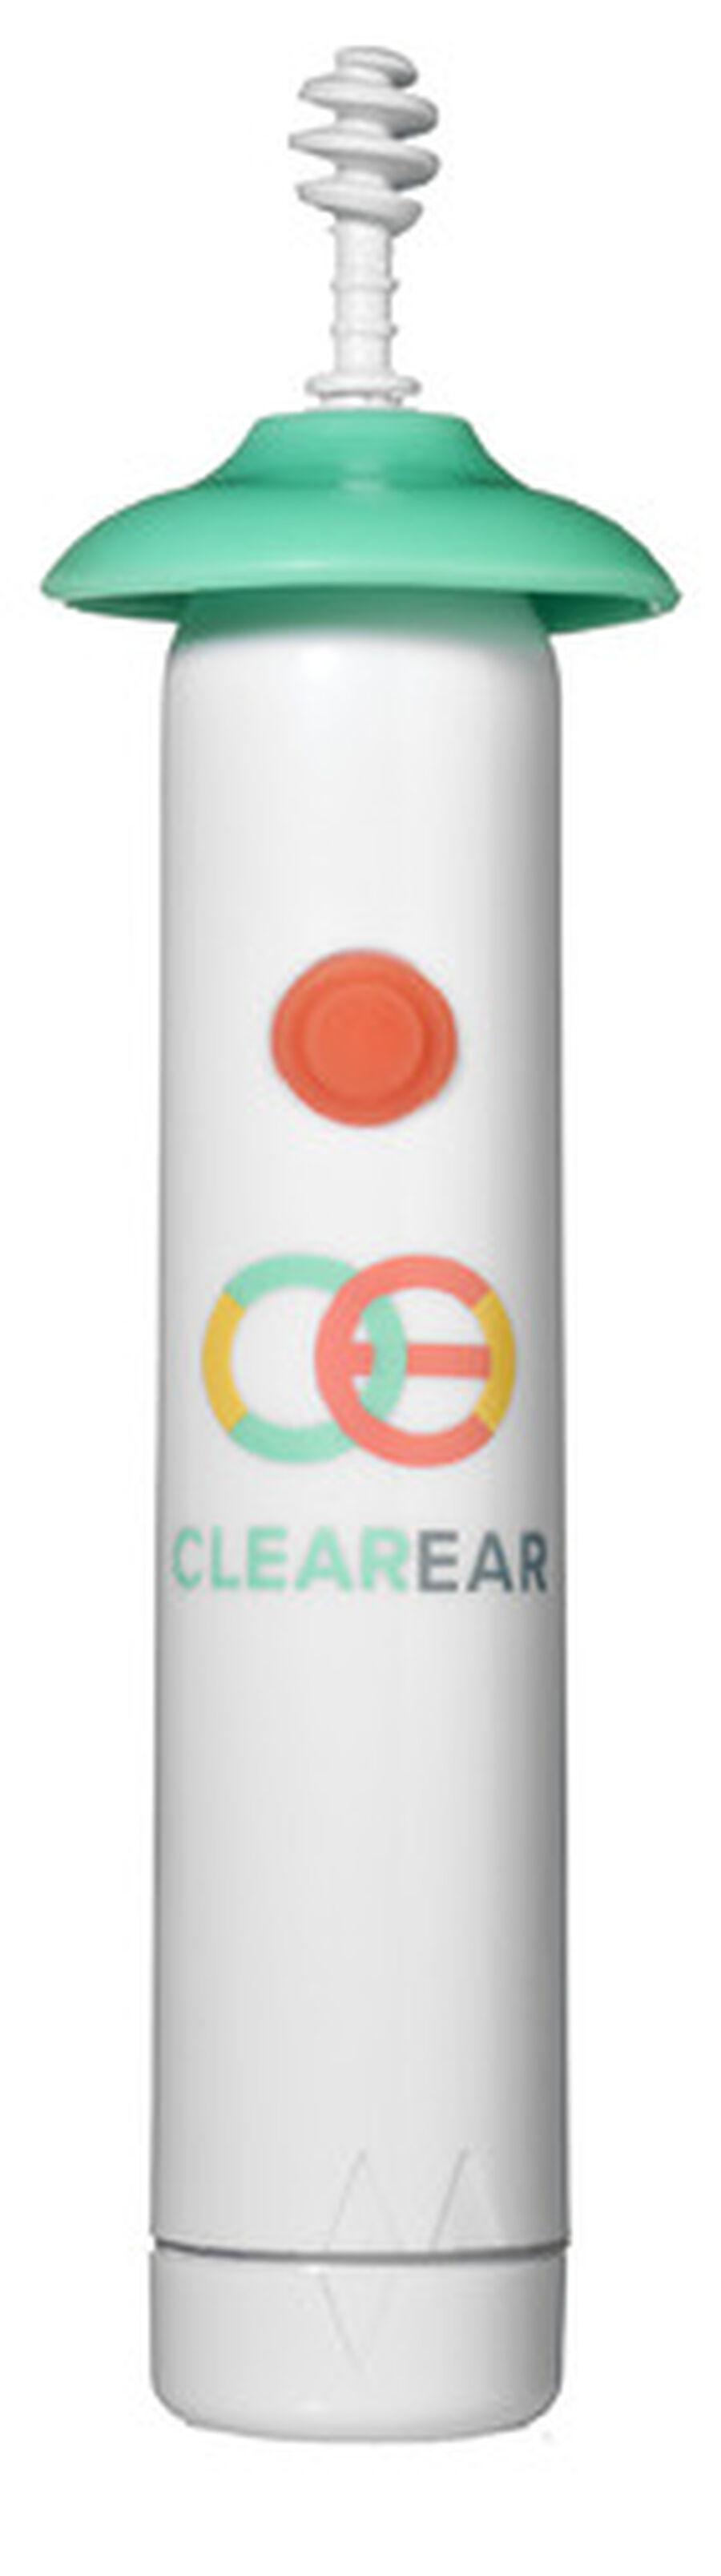 Clear Ear OTO-Tip Soft Spiral Earwax Cleaner, , large image number 2